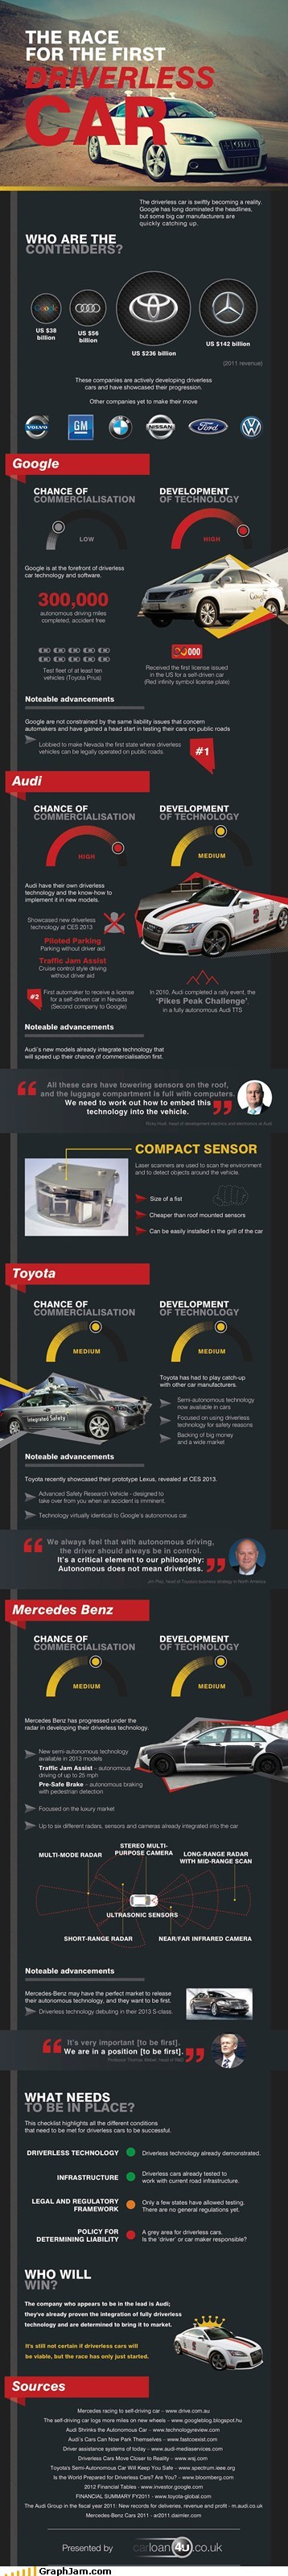 technology cars driverless infographic - 7148008448